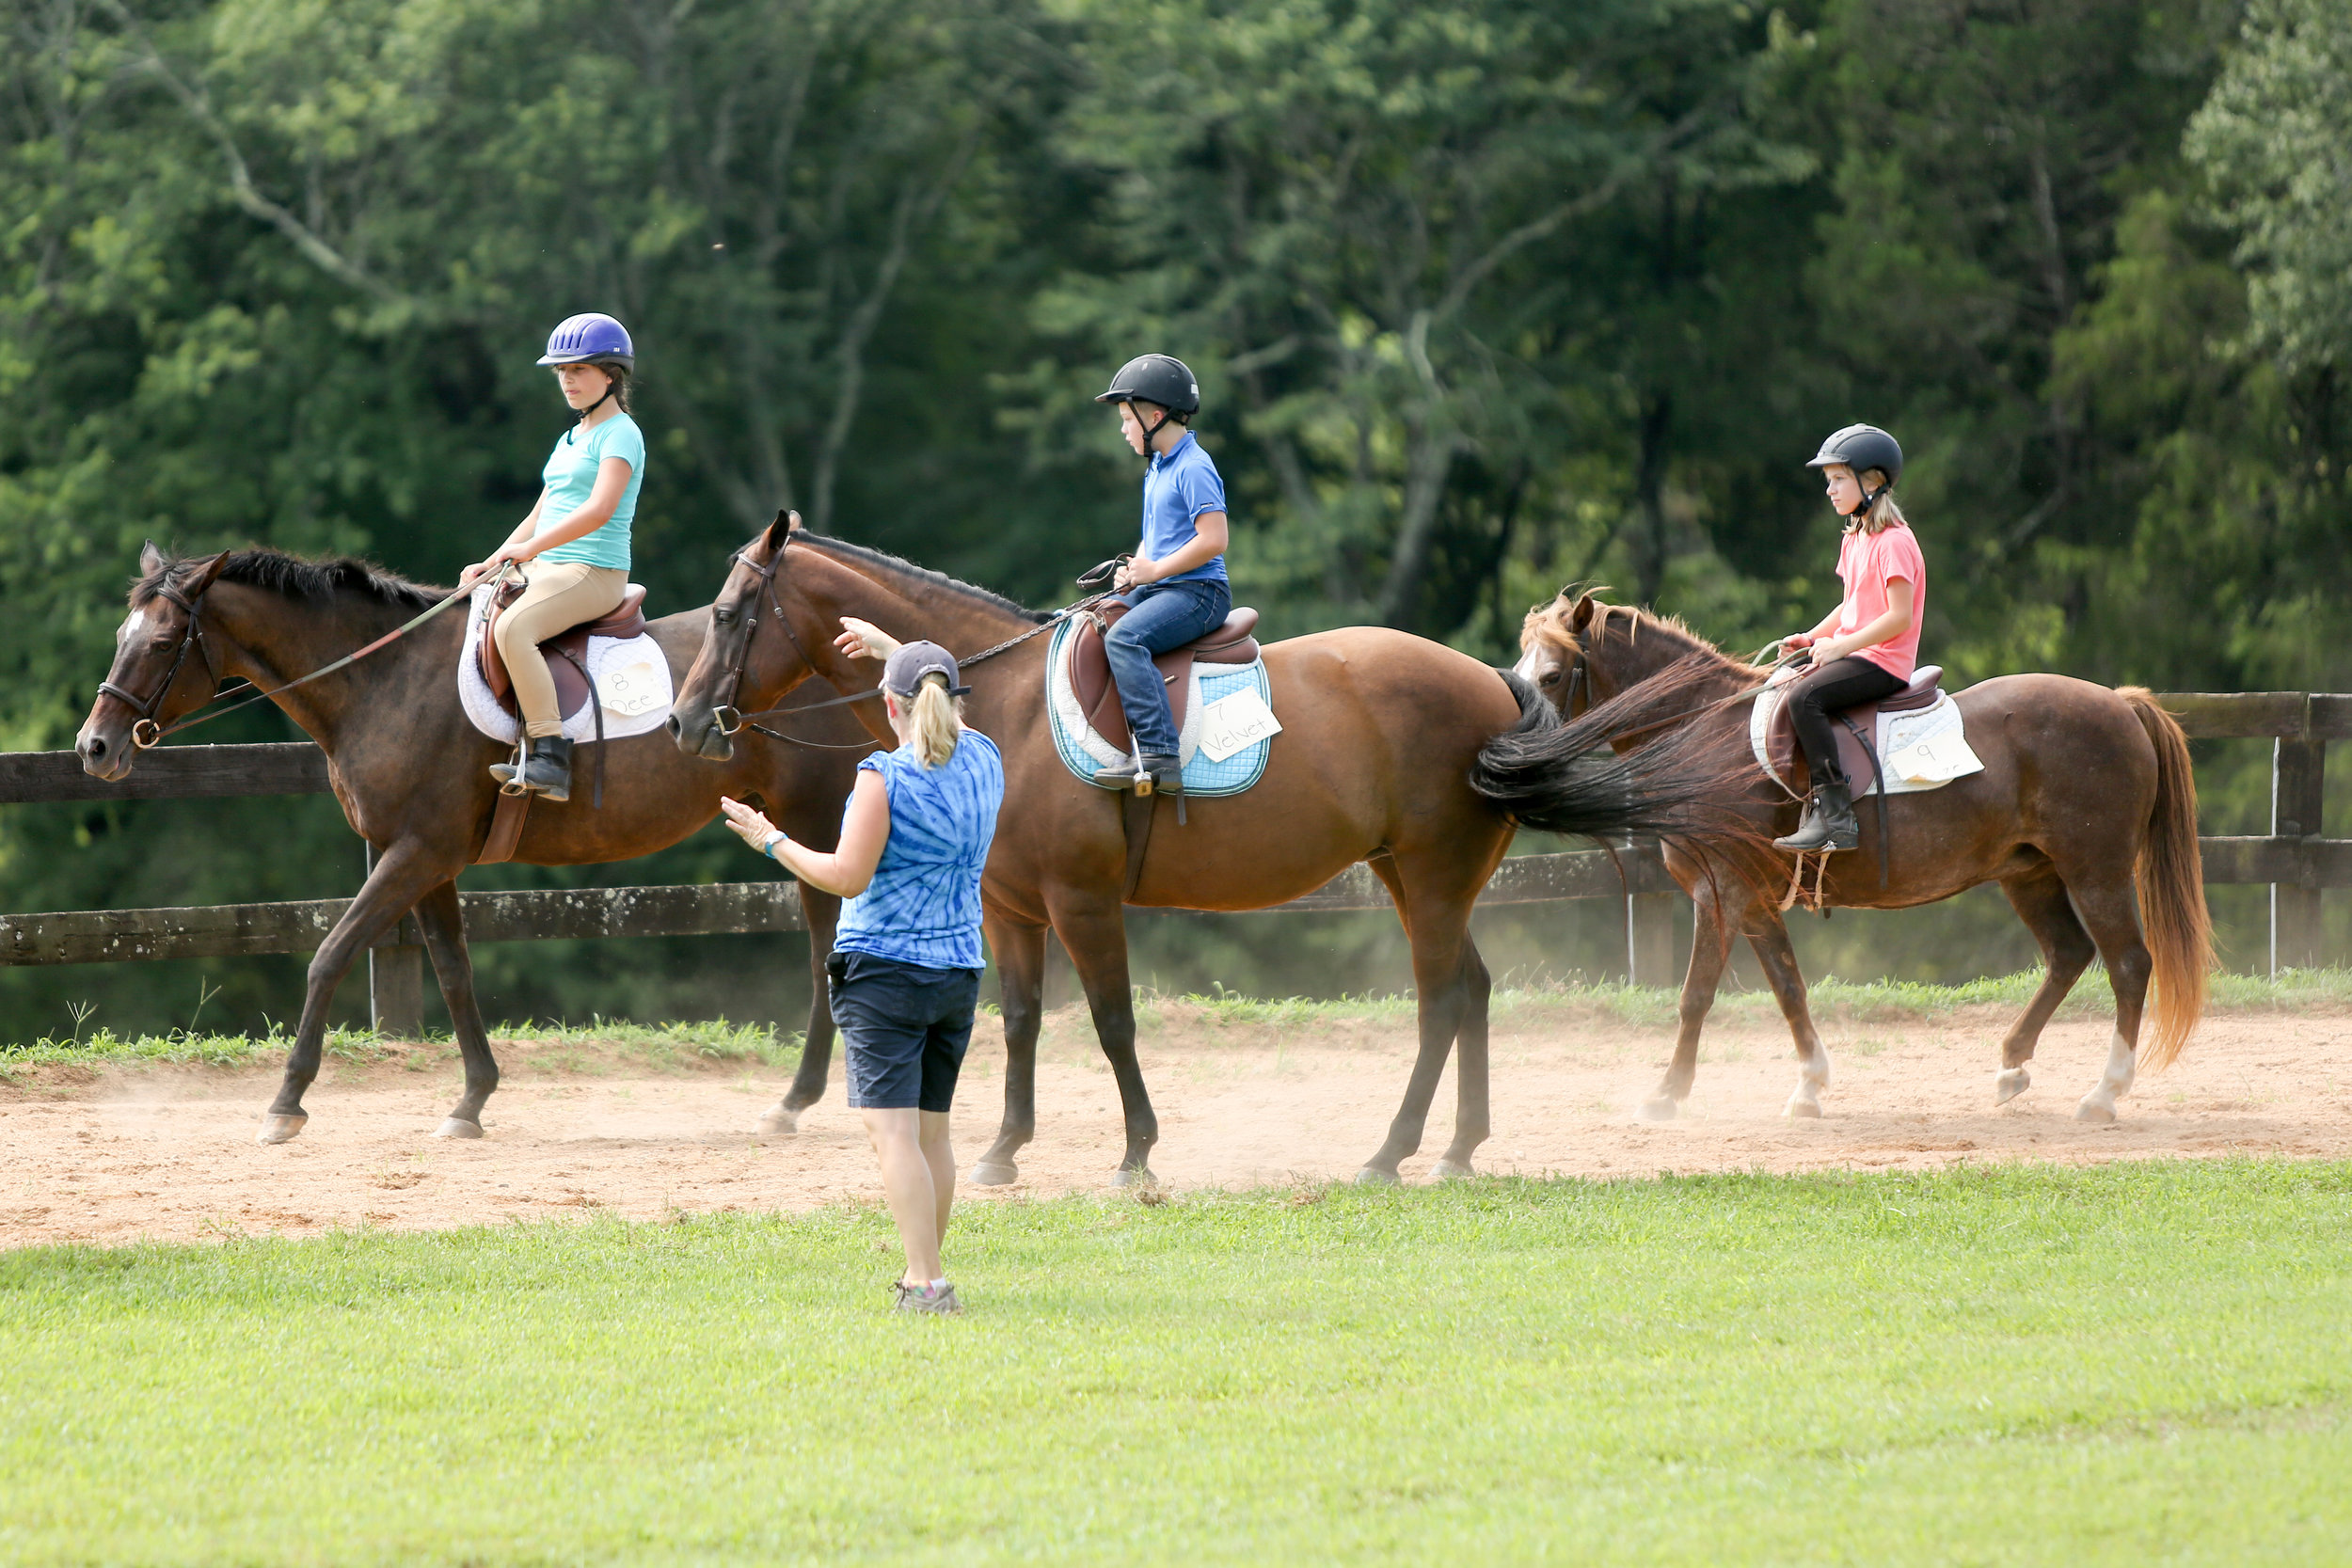 Oakland School students ride horses as part of their learning curriculum.